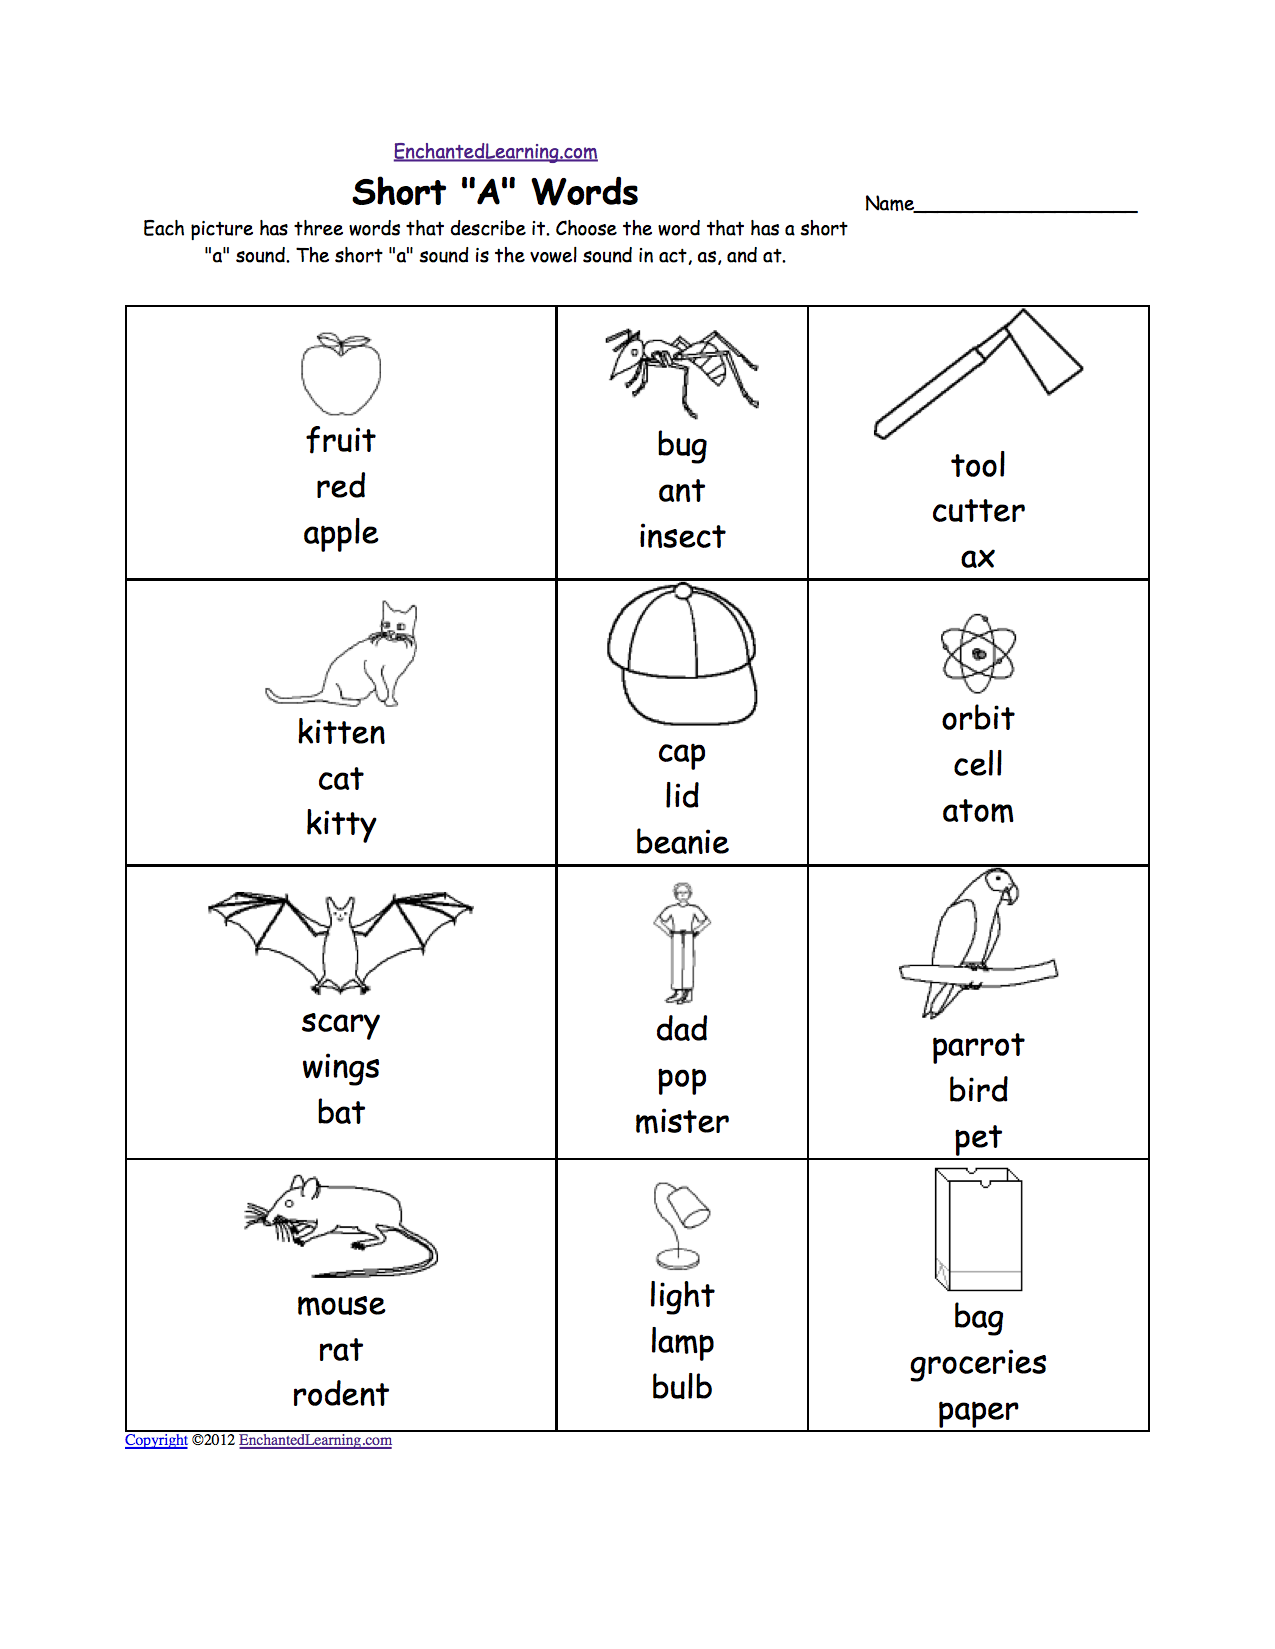 Worksheet Phonics Worksheets 2nd Grade phonics worksheets multiple choice to print enchantedlearning com